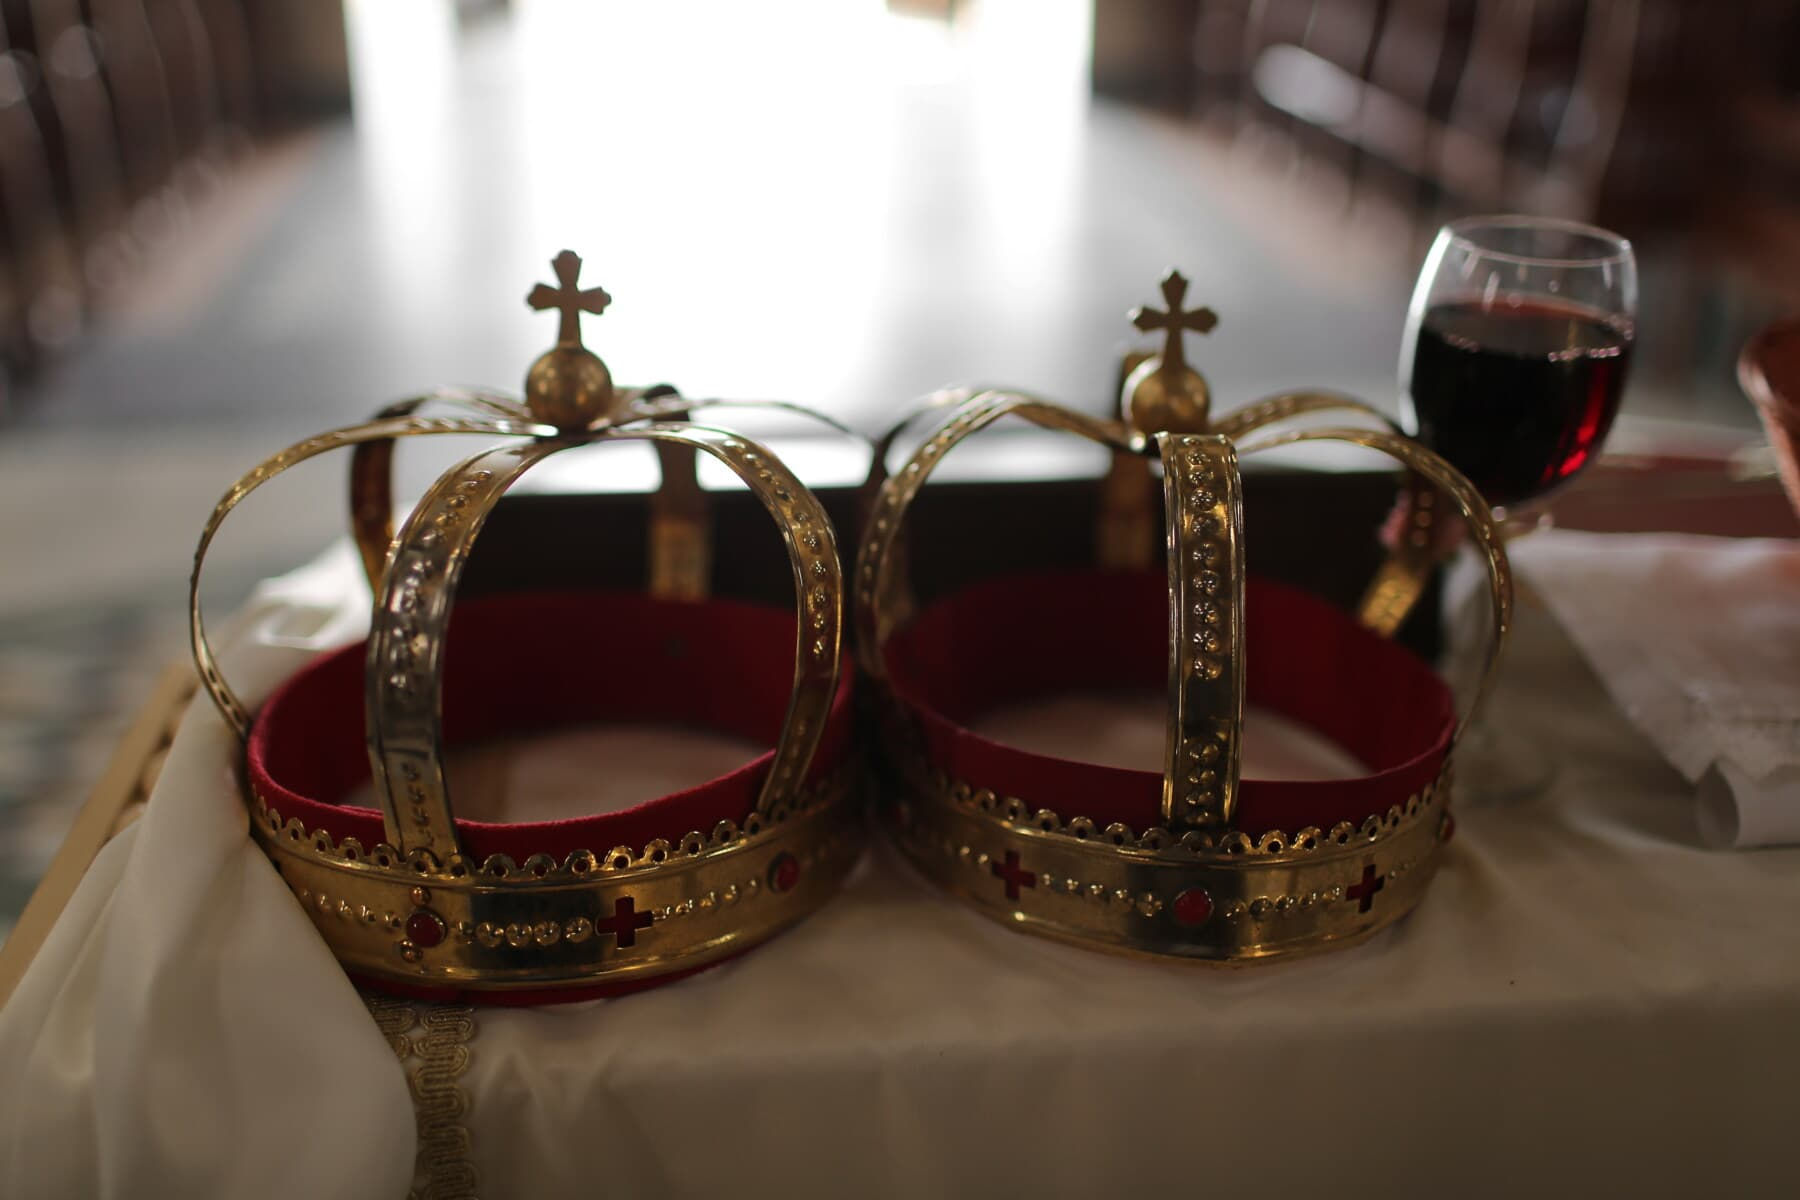 golden shine, gold, crown, religion, red wine, baptism, coronation, wedding, luxury, jewelry